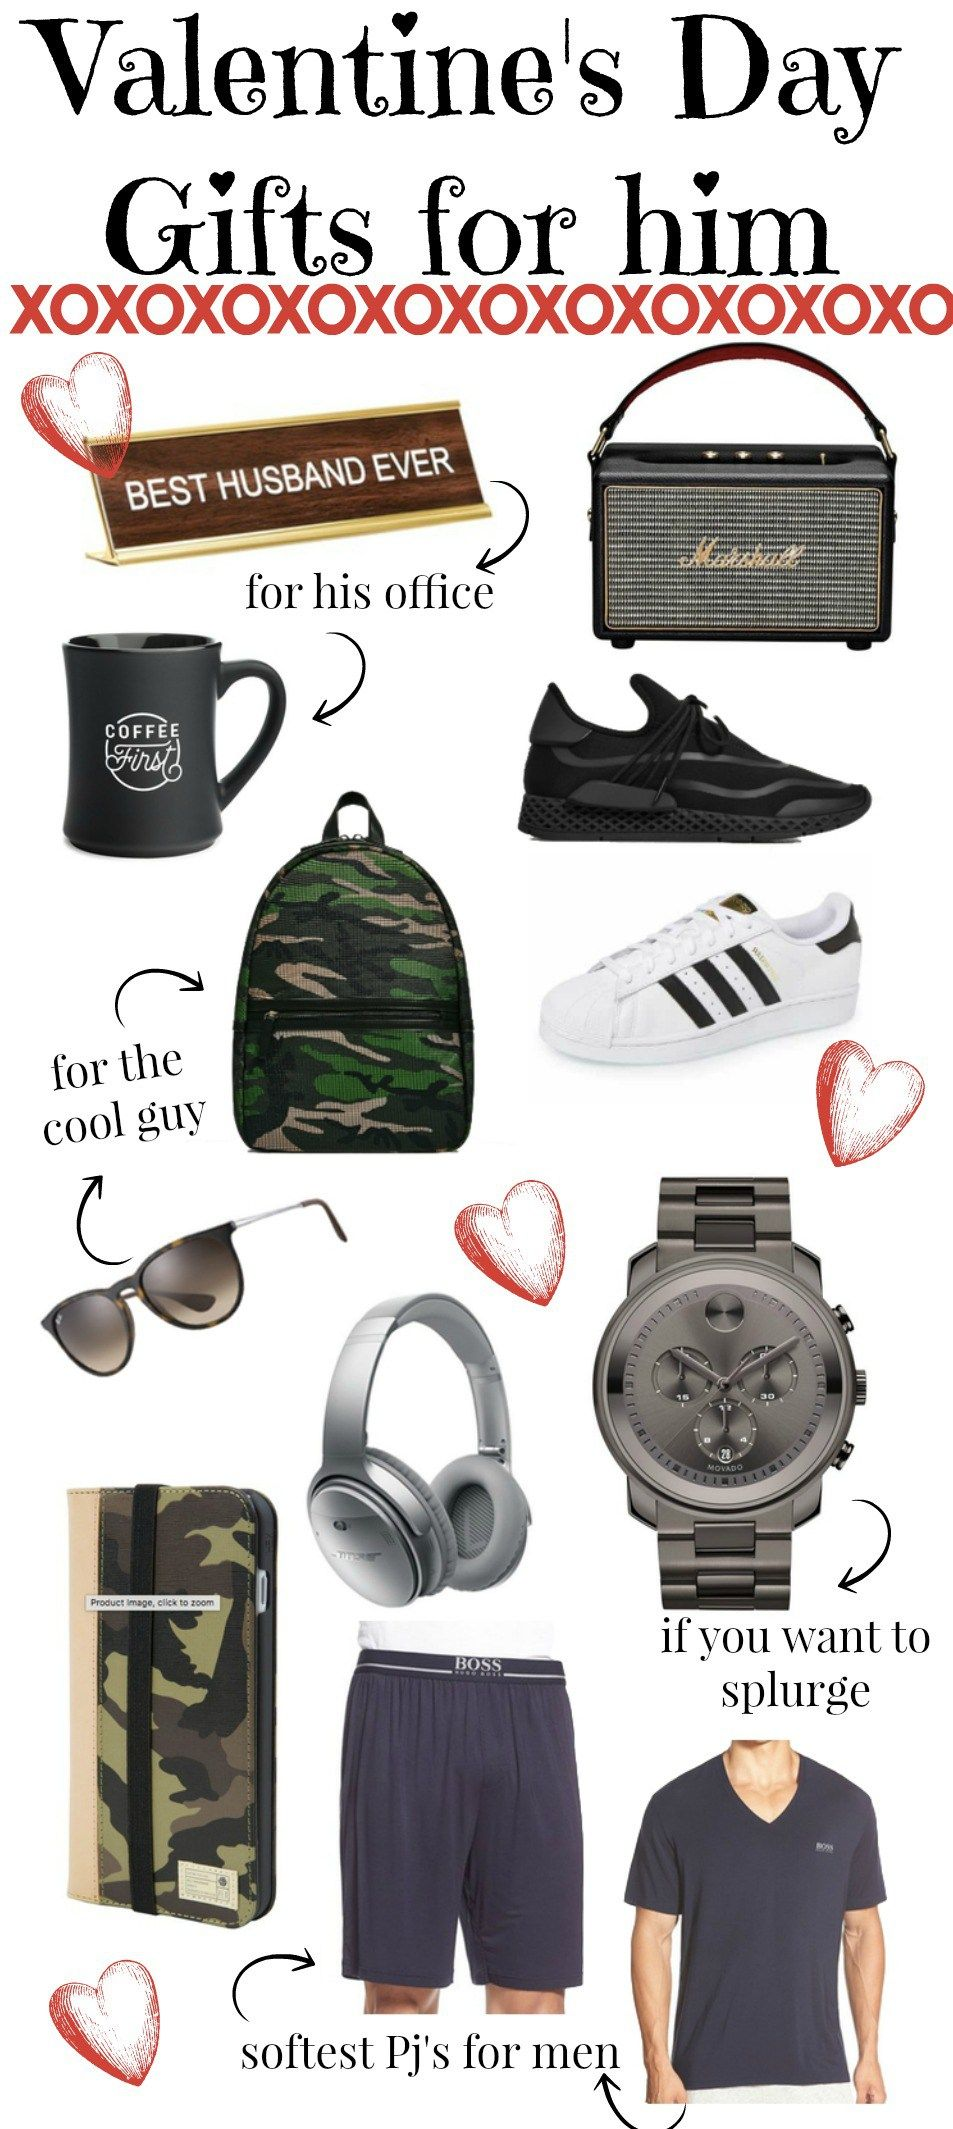 Valentines Day Gift Ideas For Him - Gift Ideas For